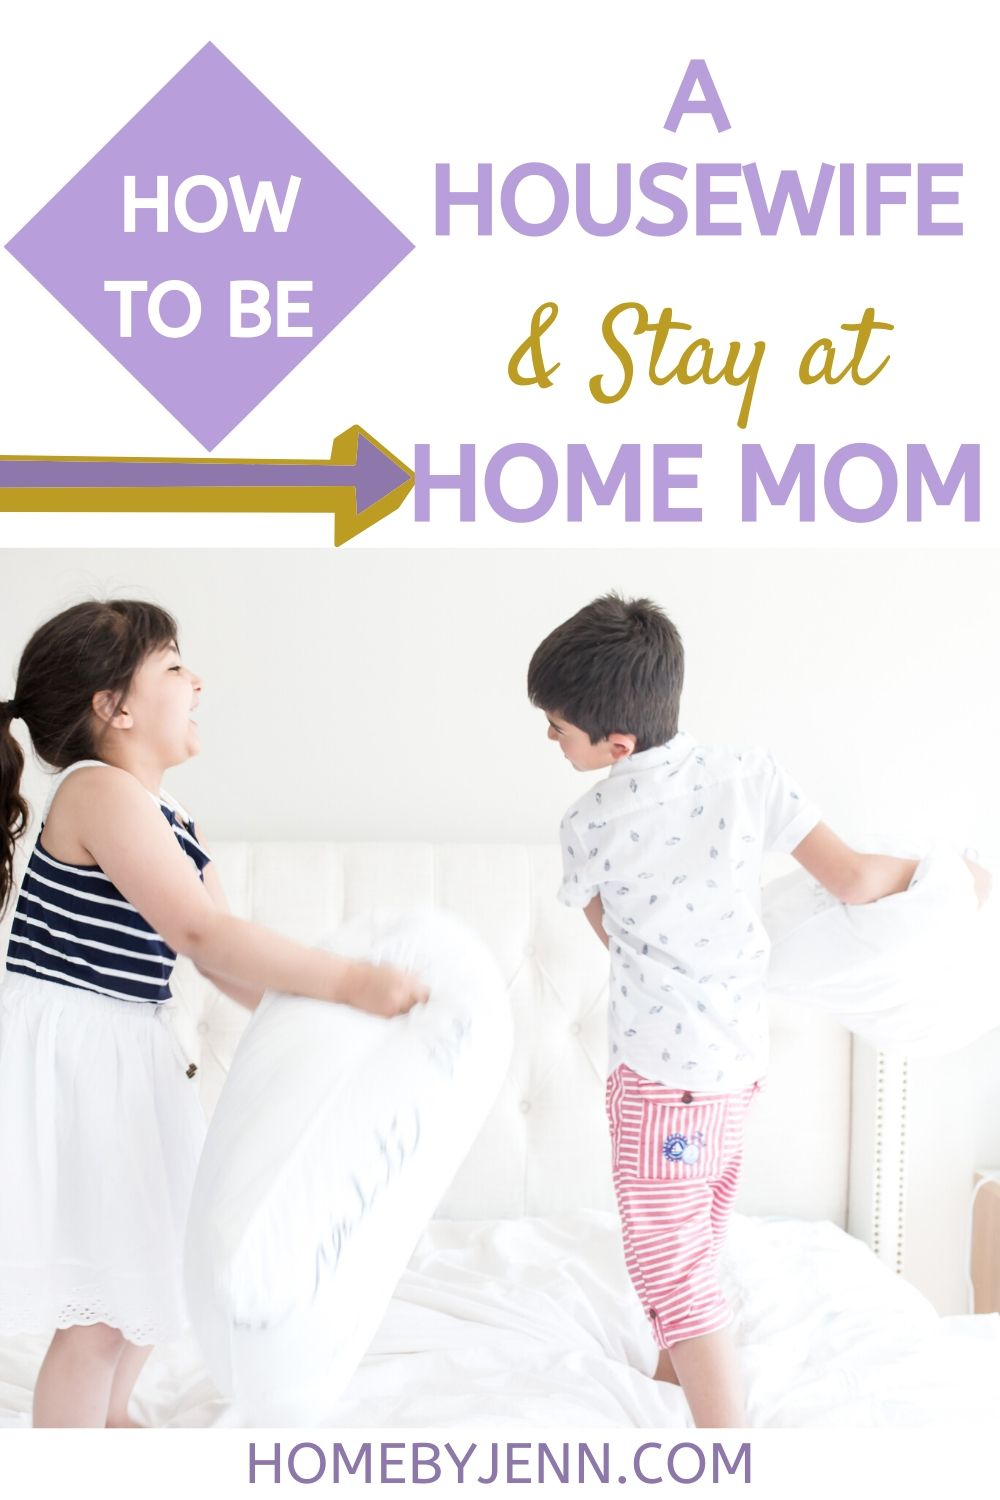 We as women put too much pressure on ourselves to become a perfect housewife and stay at home mom. In this post, I share my experiences with you about how I was able to become a successful stay at home mom and how I was able to balance housework, everyone's schedule, and get dinner on the table most nights. #SAHM #housewife #howtobeahousewife #WAHM #stayathomemom via @homebyjenn